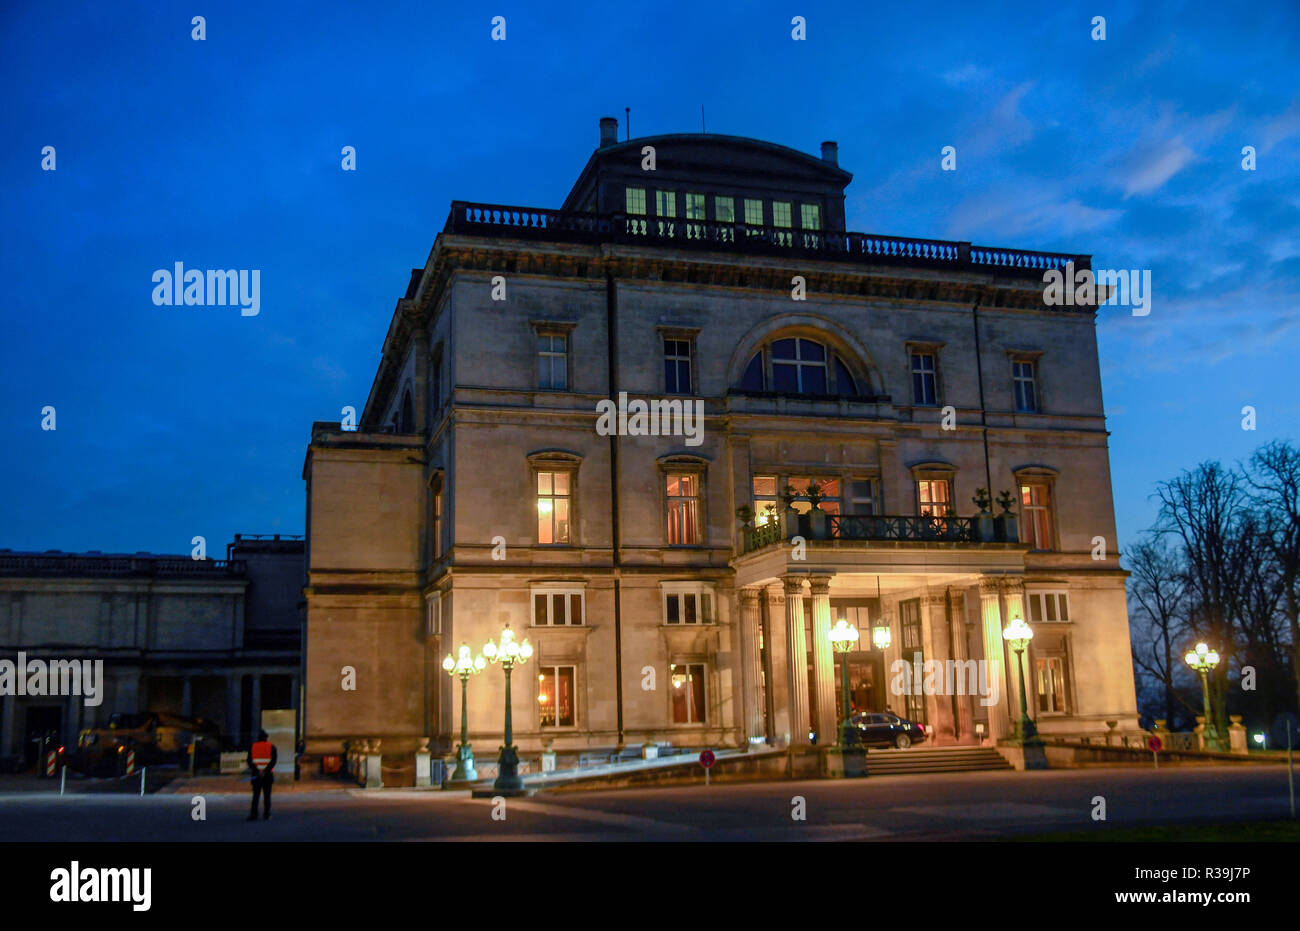 Essen, Germany. 22nd Nov, 2018. Villa Hügel can be seen in the evening light before the Alfried Krupp Award for Young University Teachers is presented. The prize is endowed with one million euros. This year's prizewinner Julian Stingel, biochemist, will be honoured for his research into the 'repair' of damaged genetic material. Credit: Ina Fassbender/dpa/Alamy Live News - Stock Image